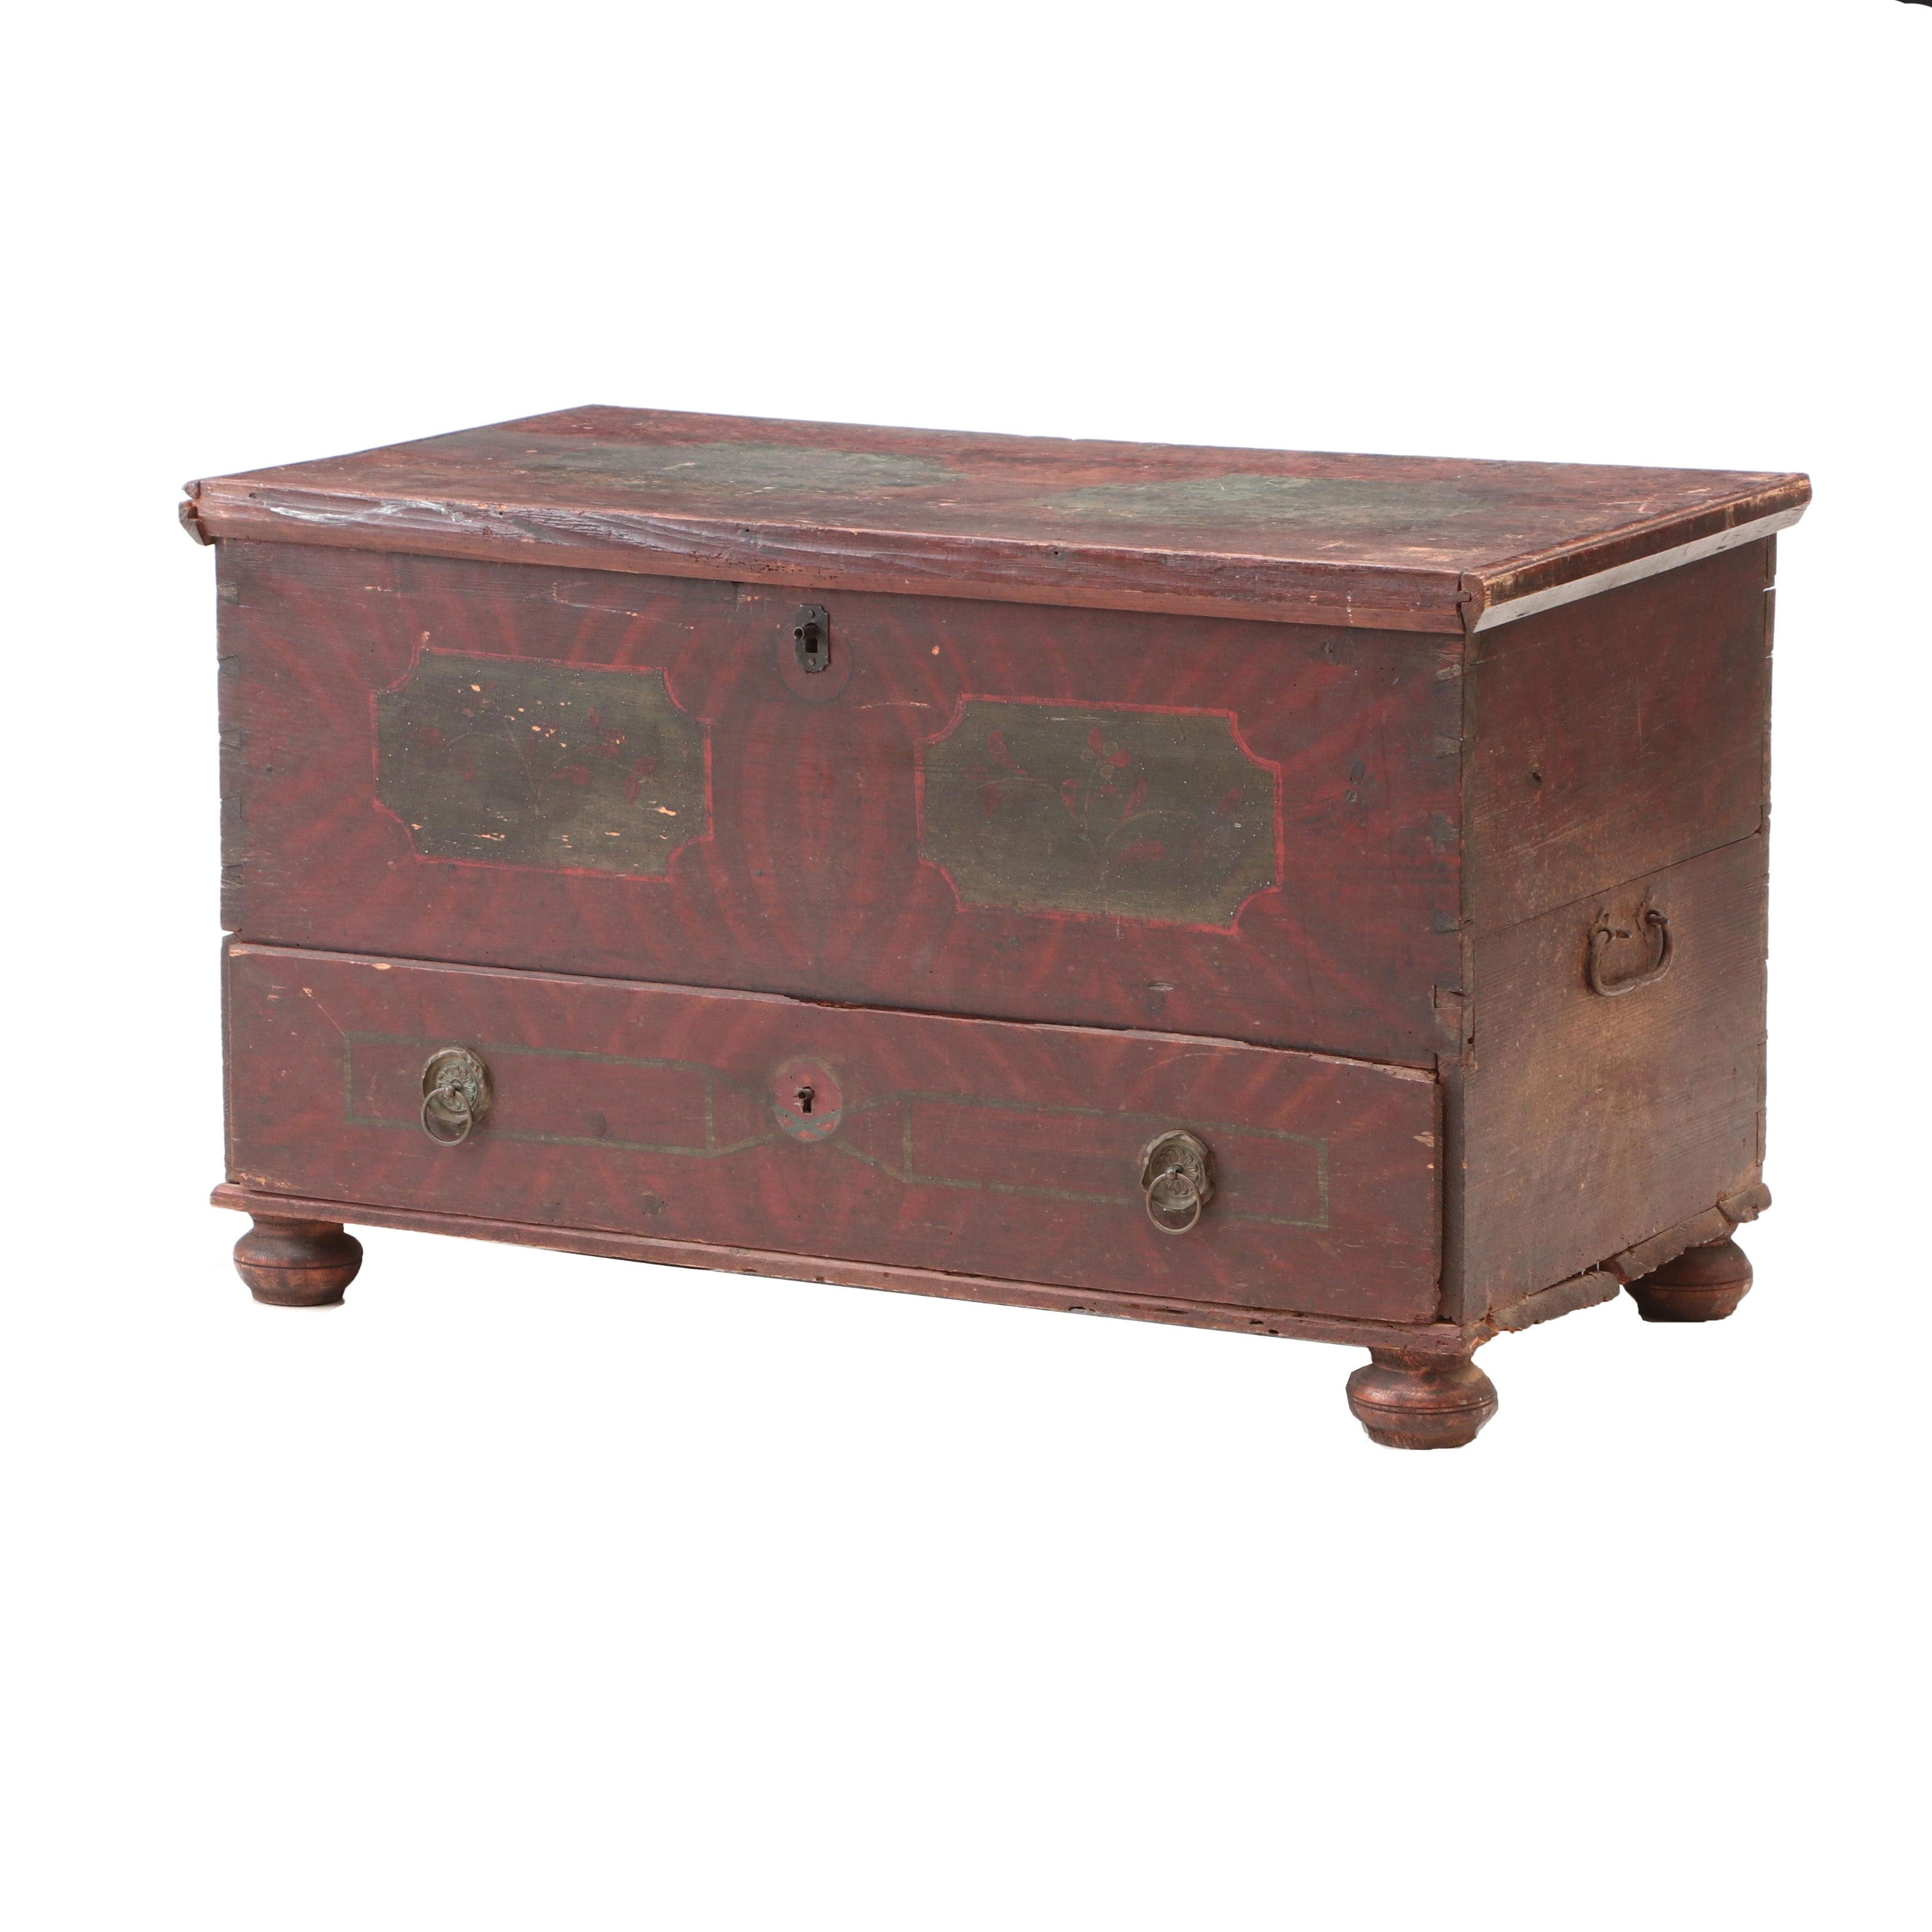 Scandinavian Paint-Decorated Pine Chest, Mid 19th Century